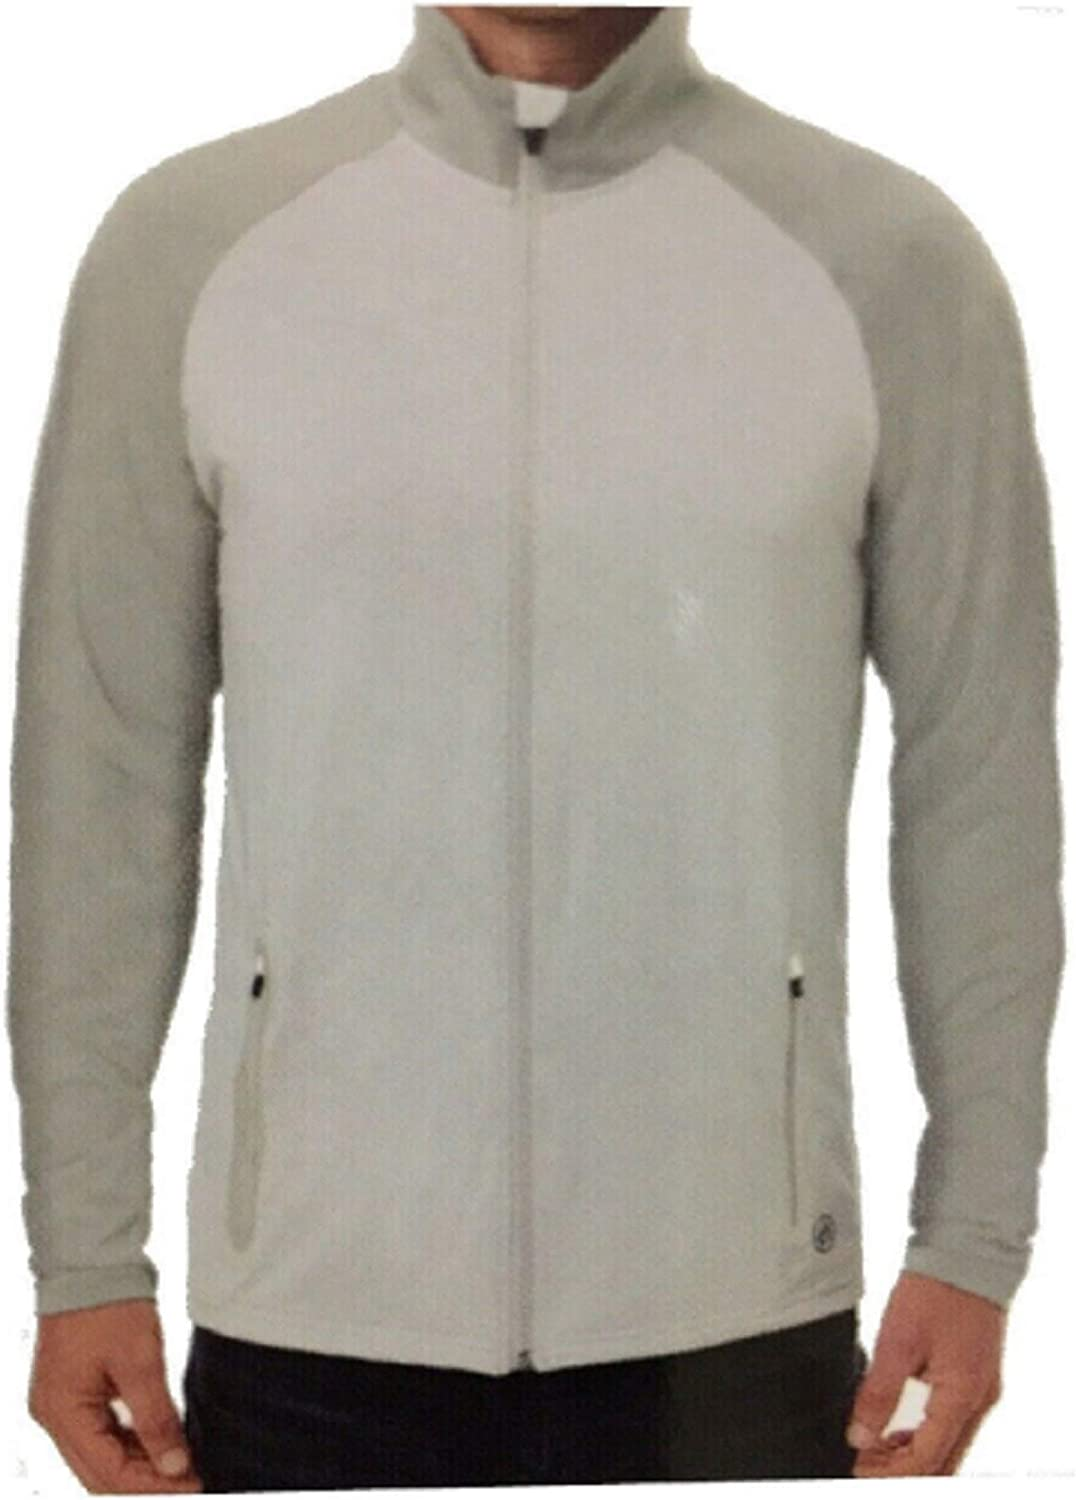 Hang Ten Mens Sun Protection Jacket